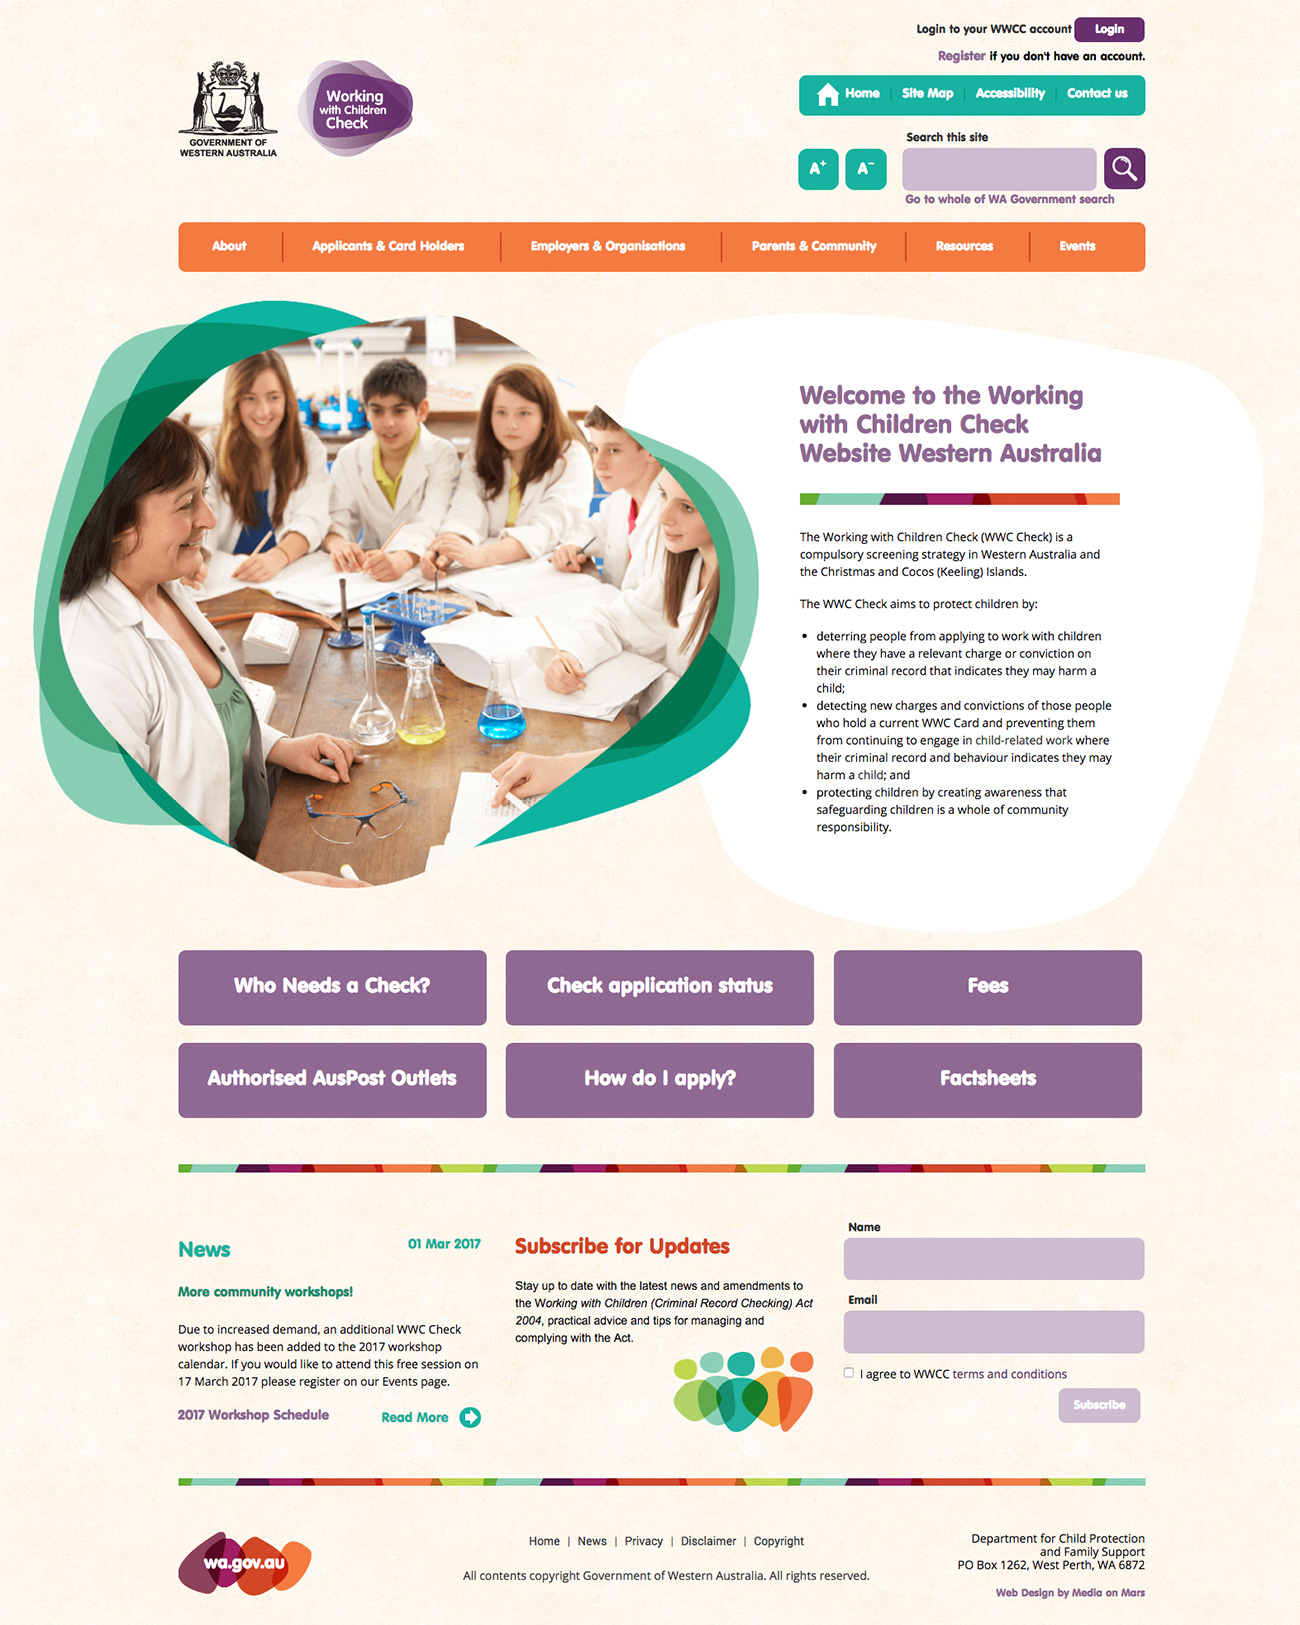 Website desktop homepage of Working With Children Check website